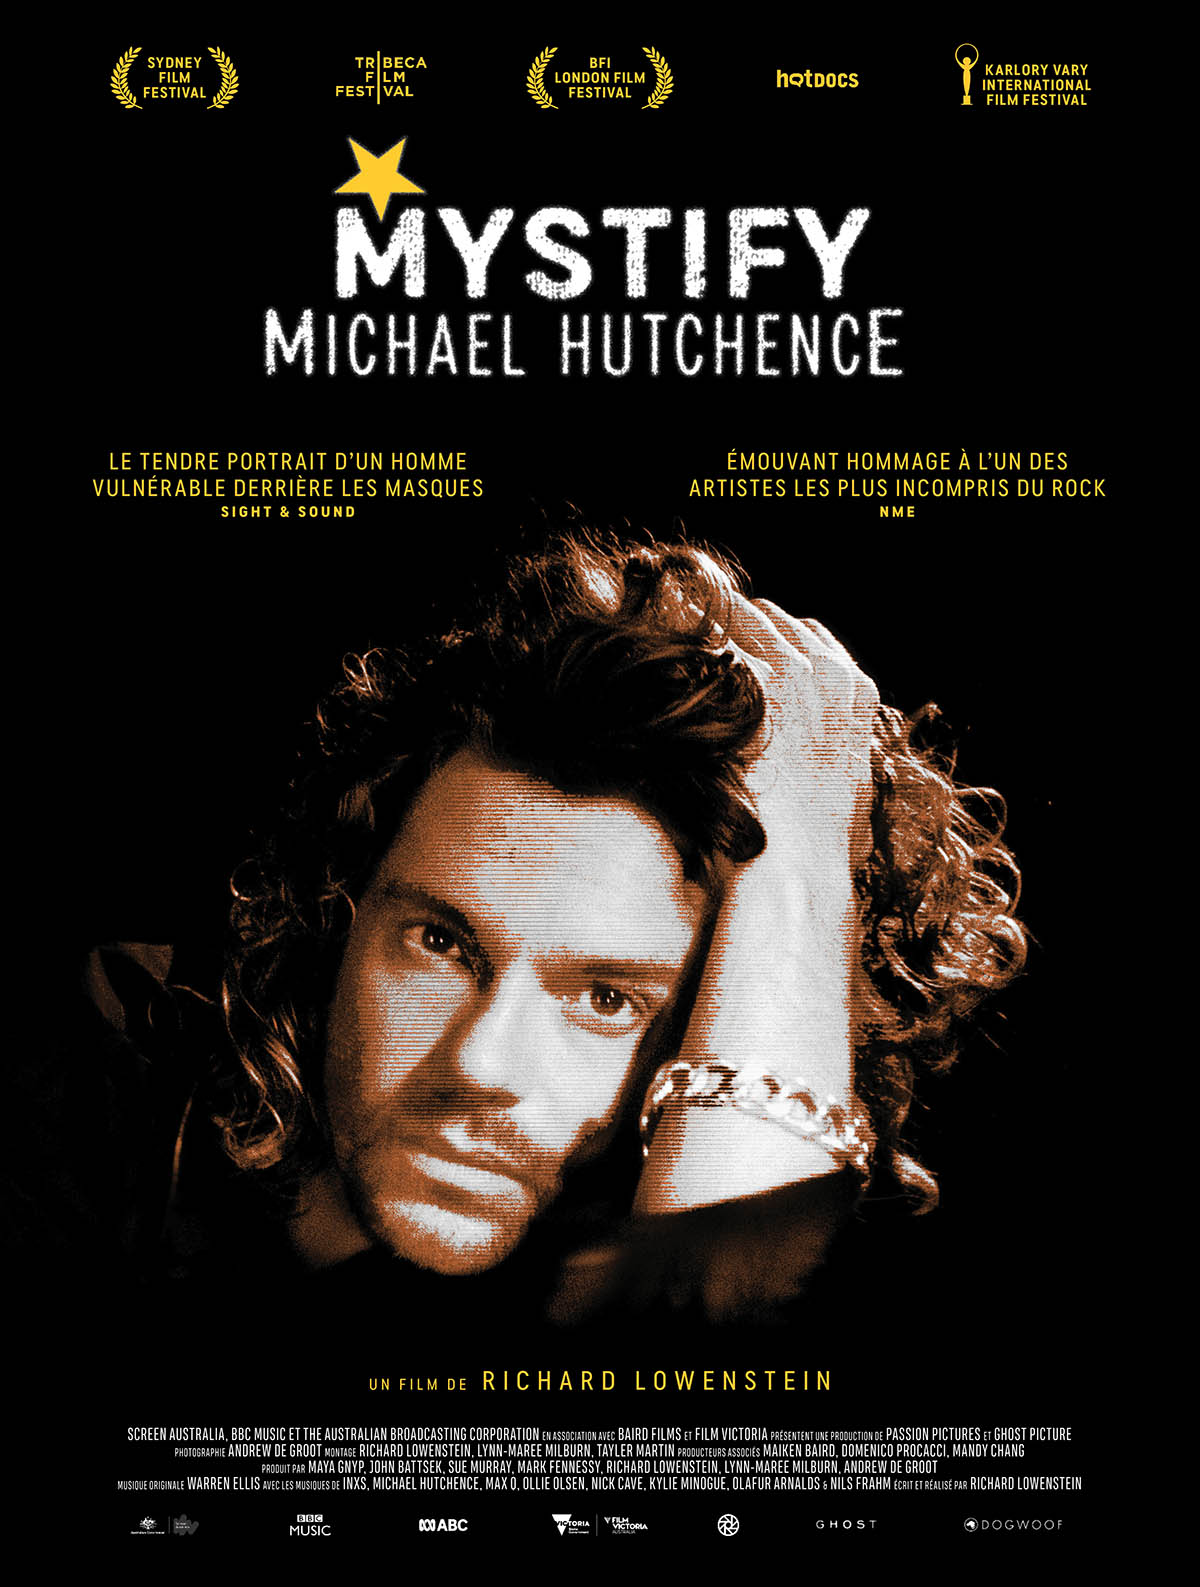 Mystify Michael Hutchence, affiche du documentaire sur INXS